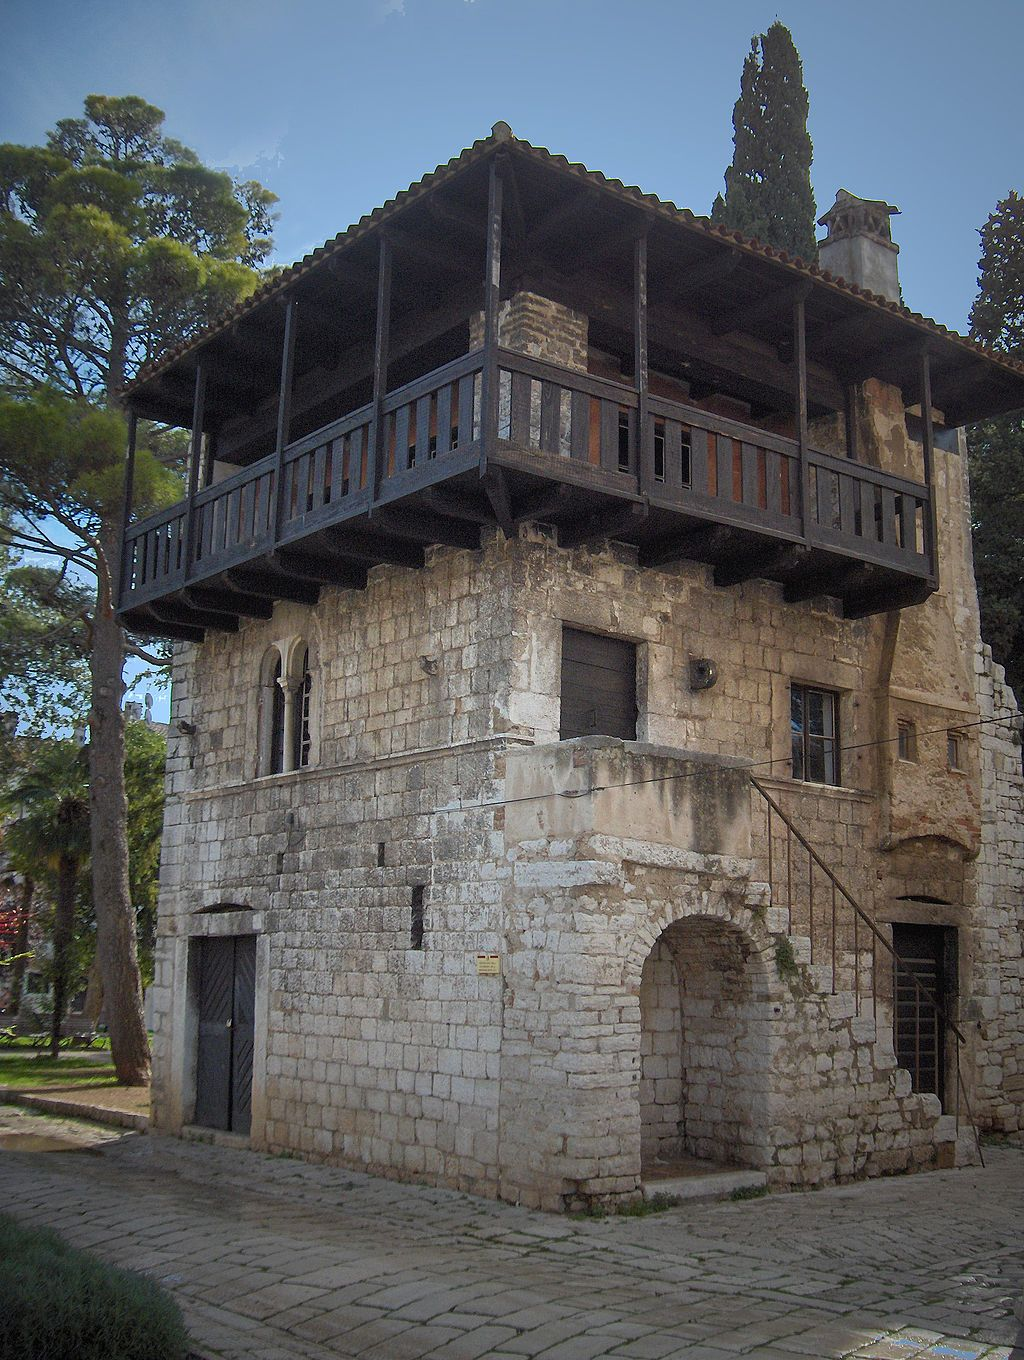 A Small Three Storey Stone House With An Exterior Stone